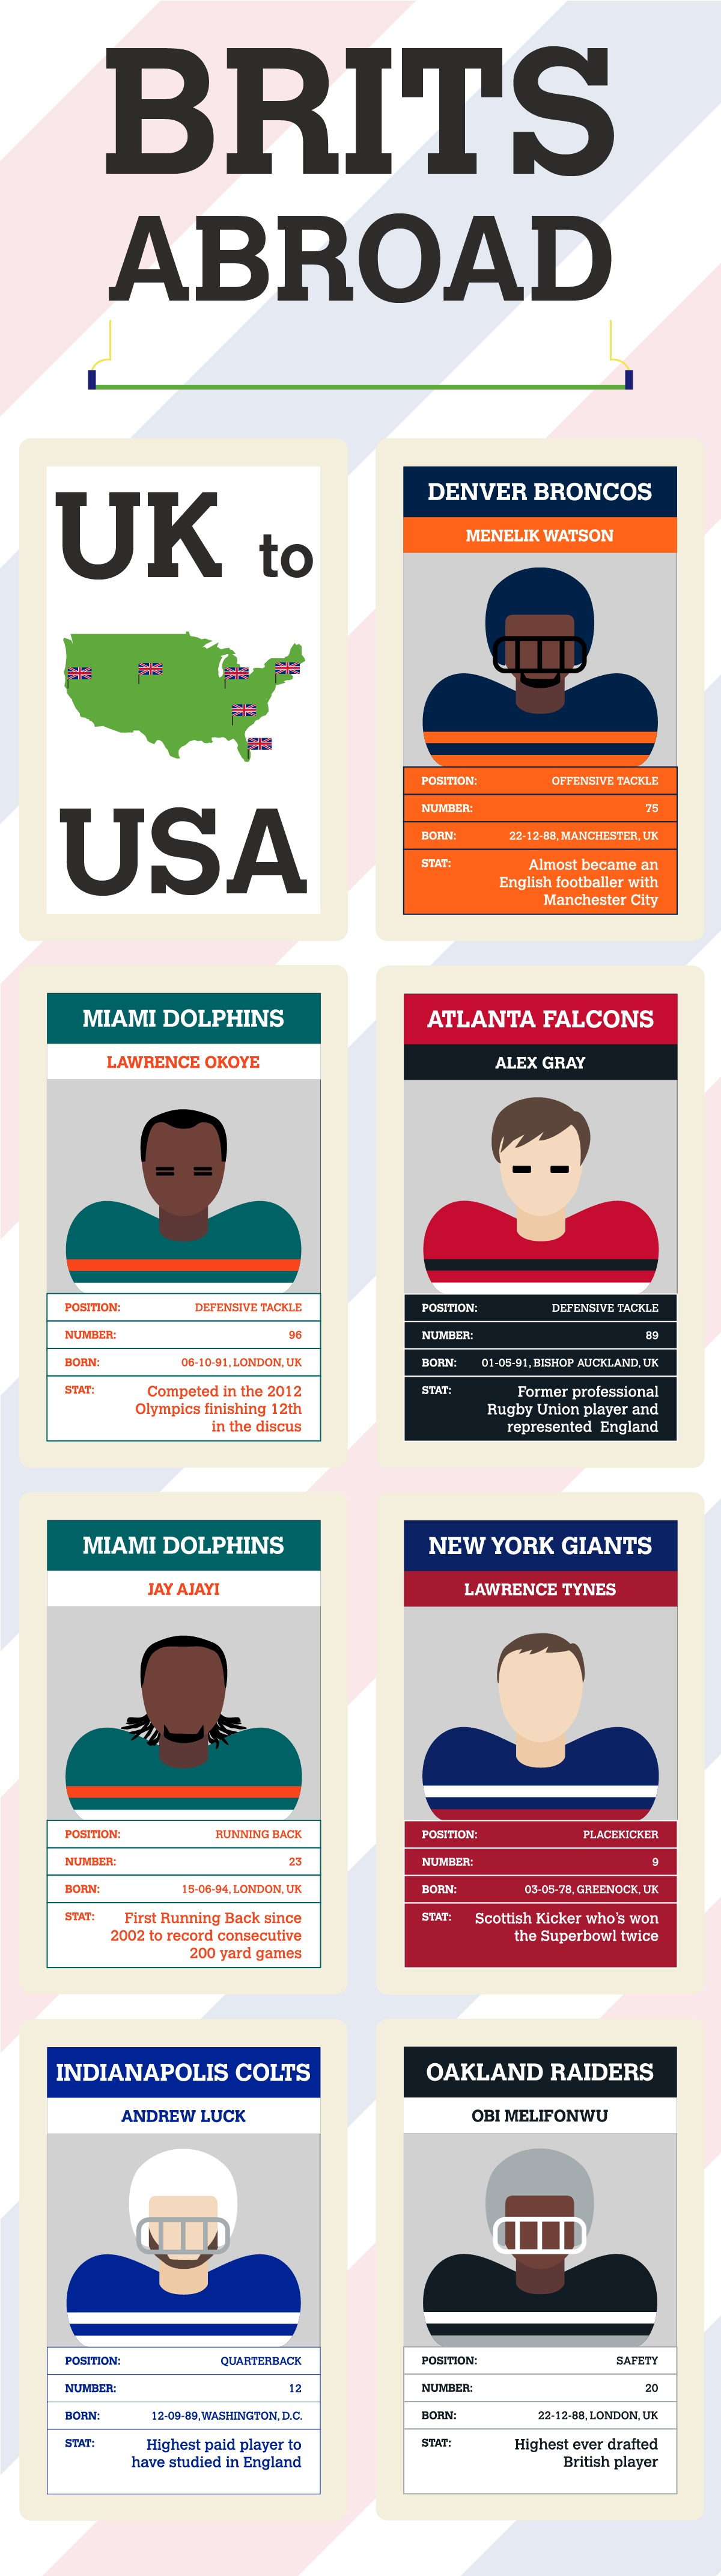 NFL_Infographic_Brits (11-10-2017).jpg